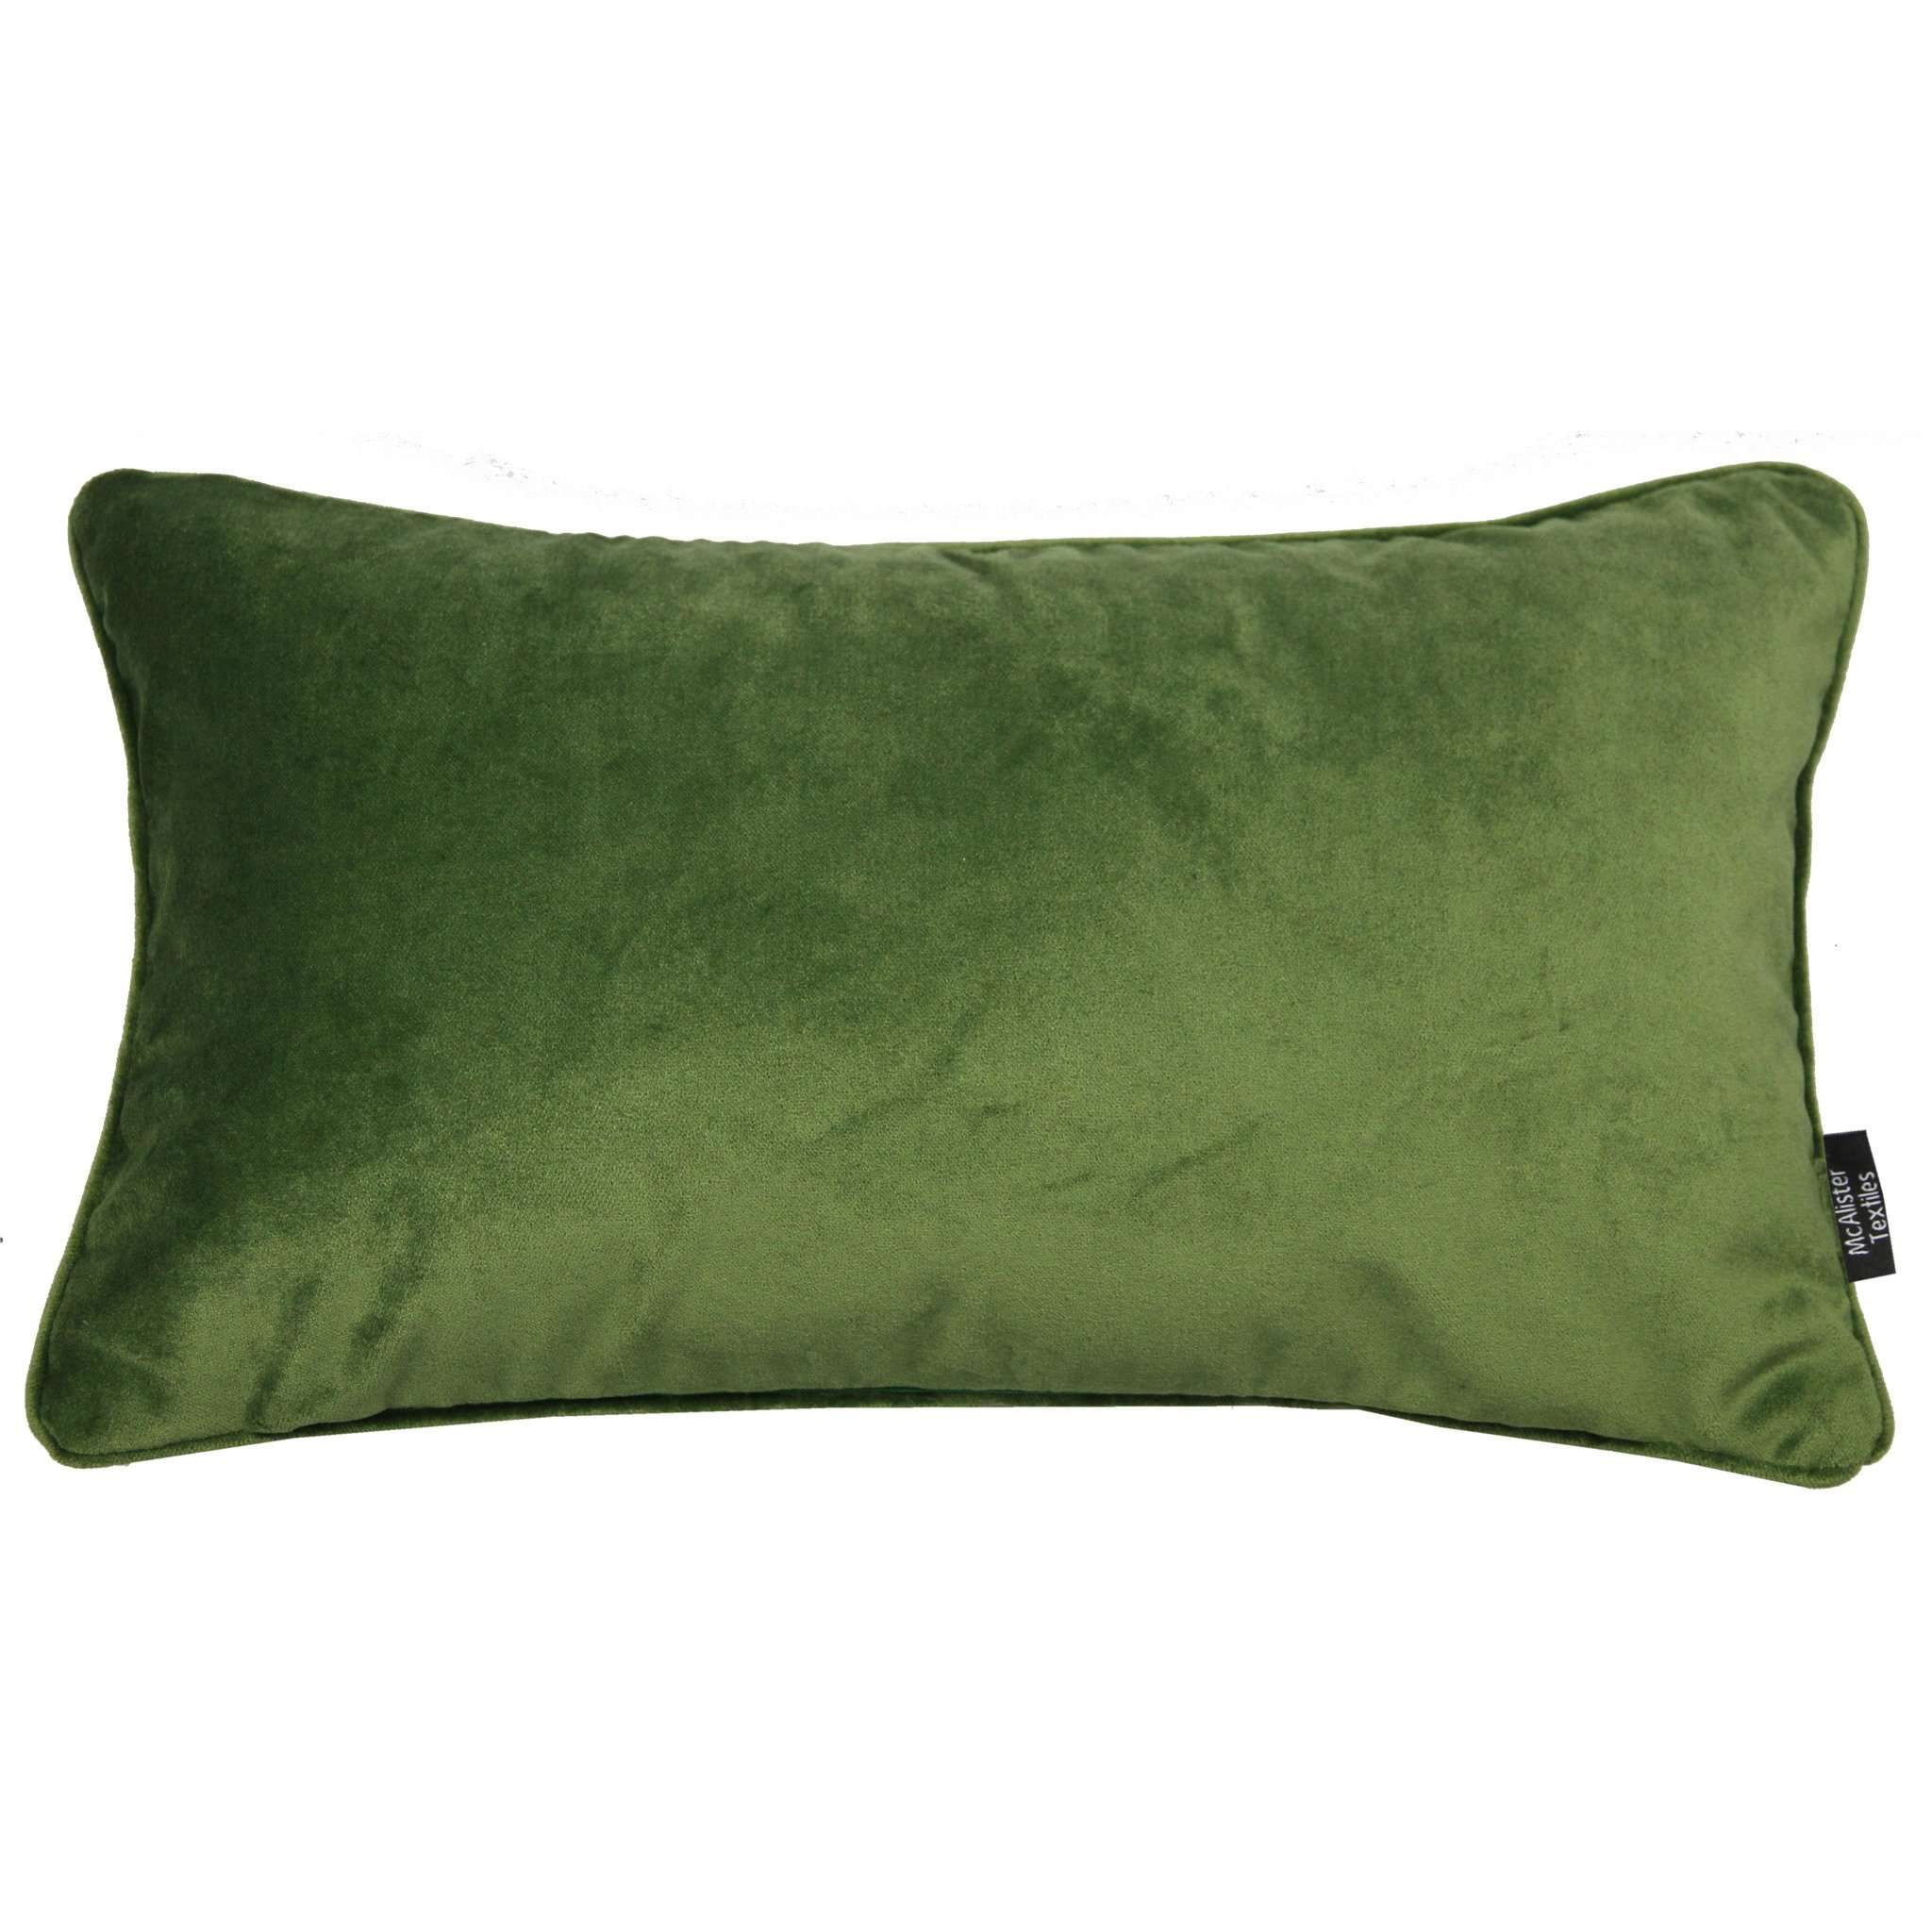 McAlister Textiles Matt Fern Green Velvet Cushion Cushions and Covers Cover Only 50cm x 30cm